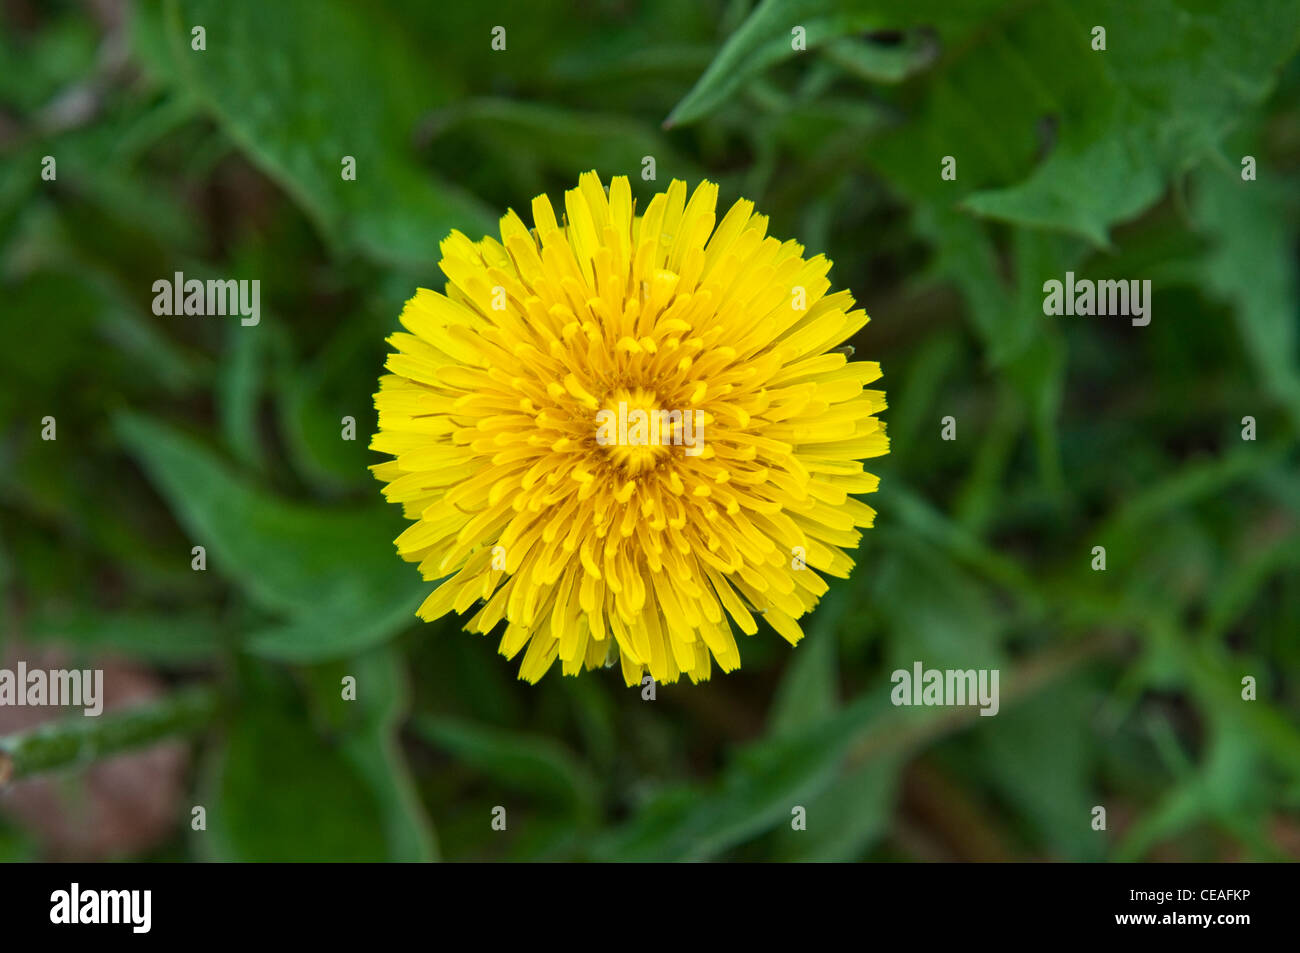 Yellow dandelion flower blooming with edible foliage in the background. - Stock Image